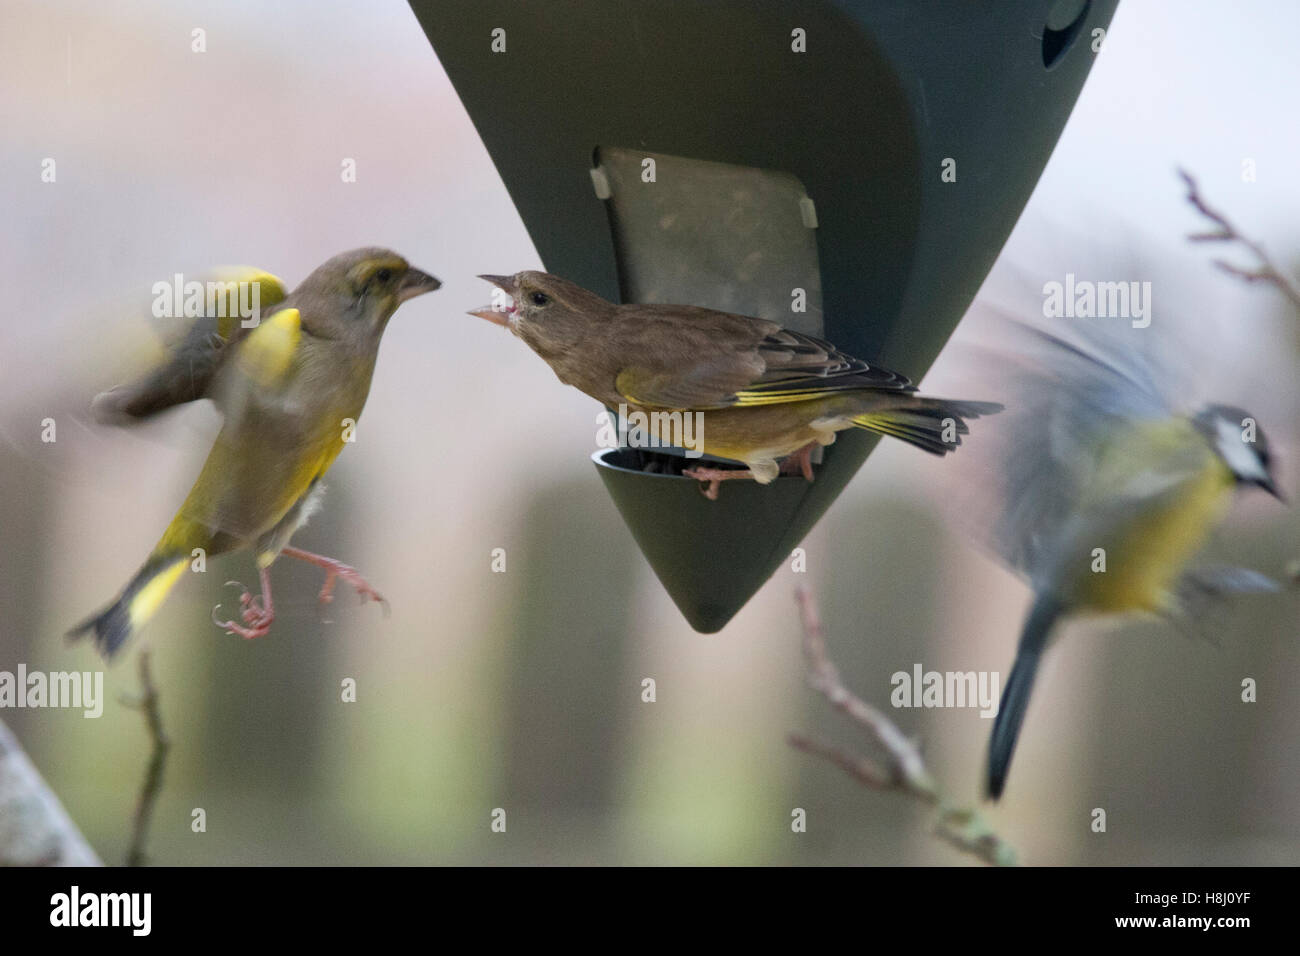 GREEN FINCHES at feed machine Stock Photo